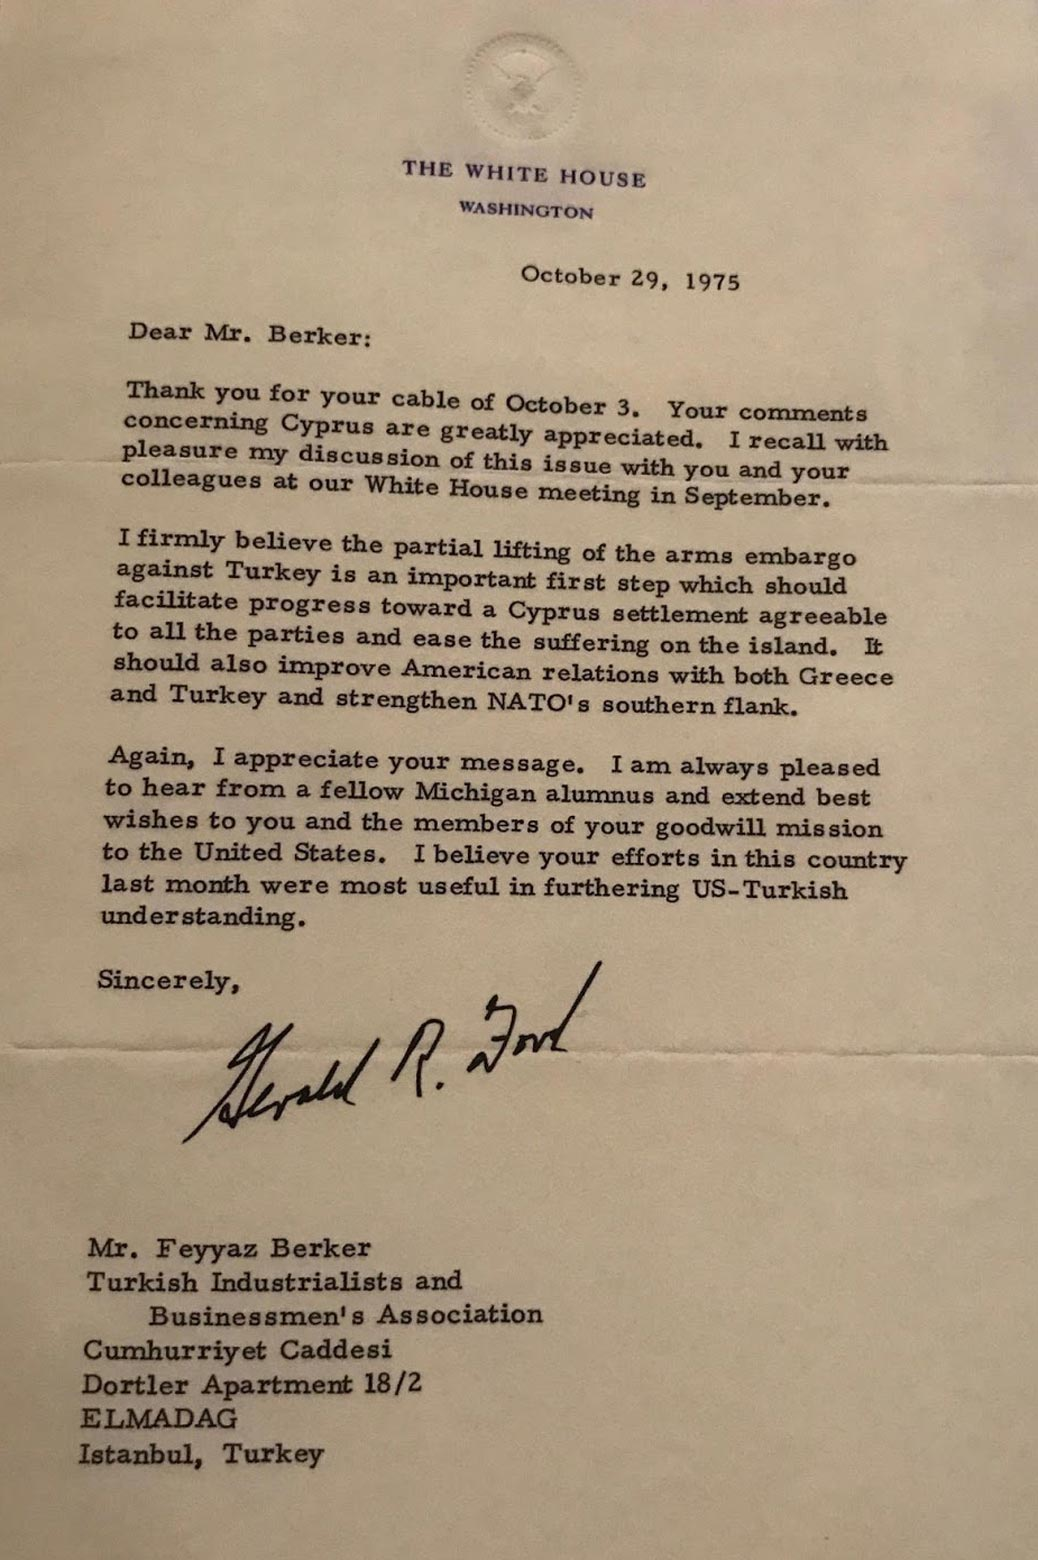 a photo of a letter sent to Feyyaz Berker